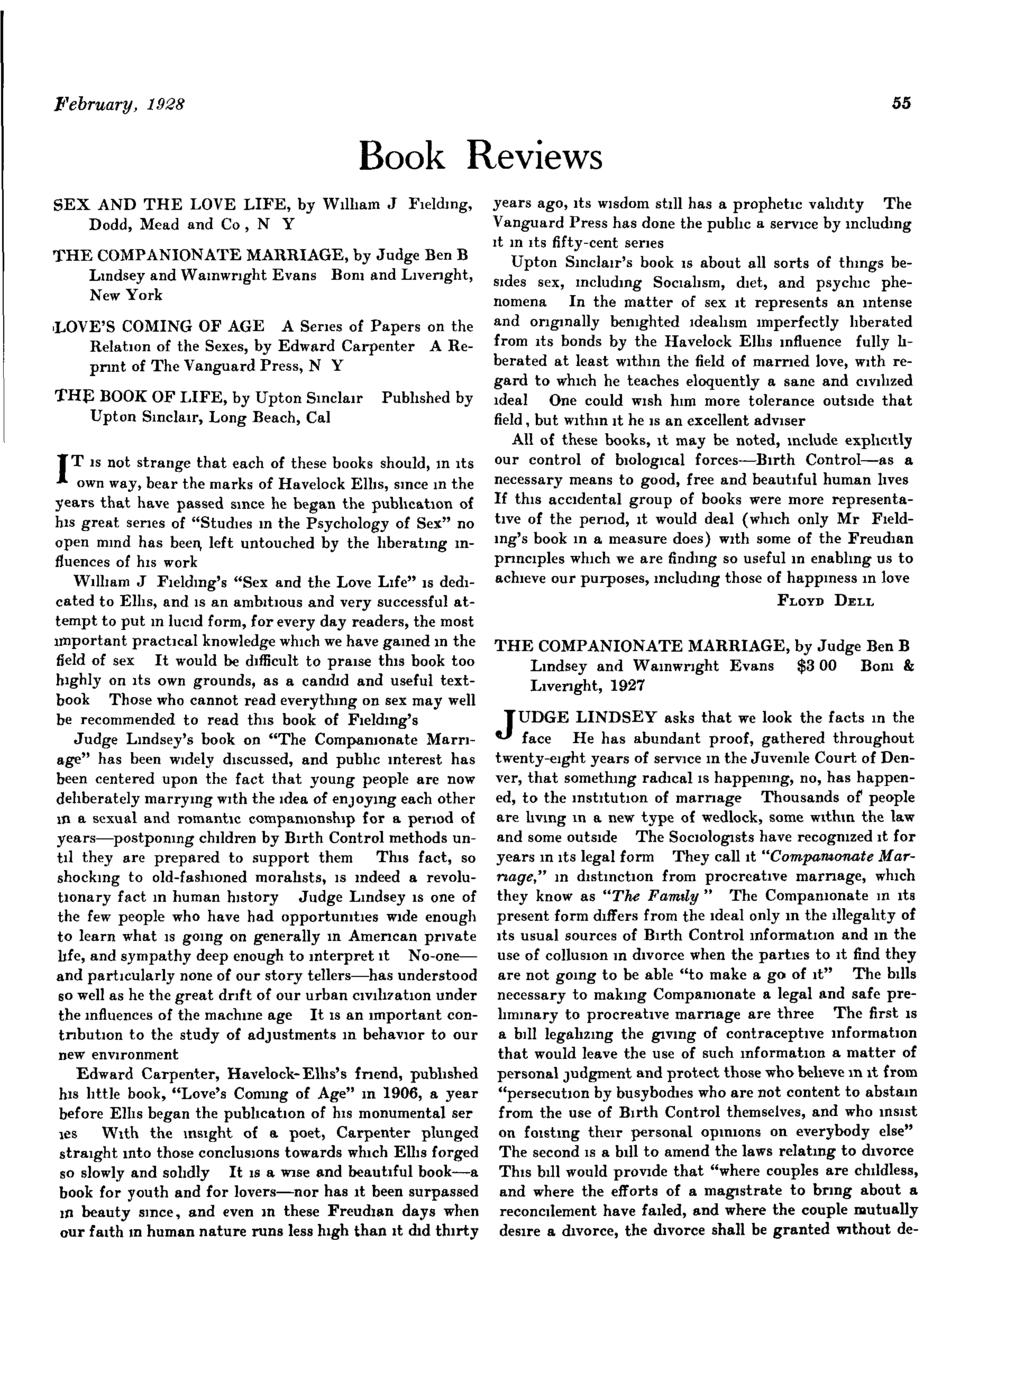 February, 1928 Book Reviews SEX AND THE LOVE LIFE, by W~ll~am J F~eldlng, Dodd, Mead and Co, N Y THE COMPANIONATE MARRIAGE, by Judge Ben B Lmdsey and Walnwrlght Evans Bon~ and Llvenght, New York